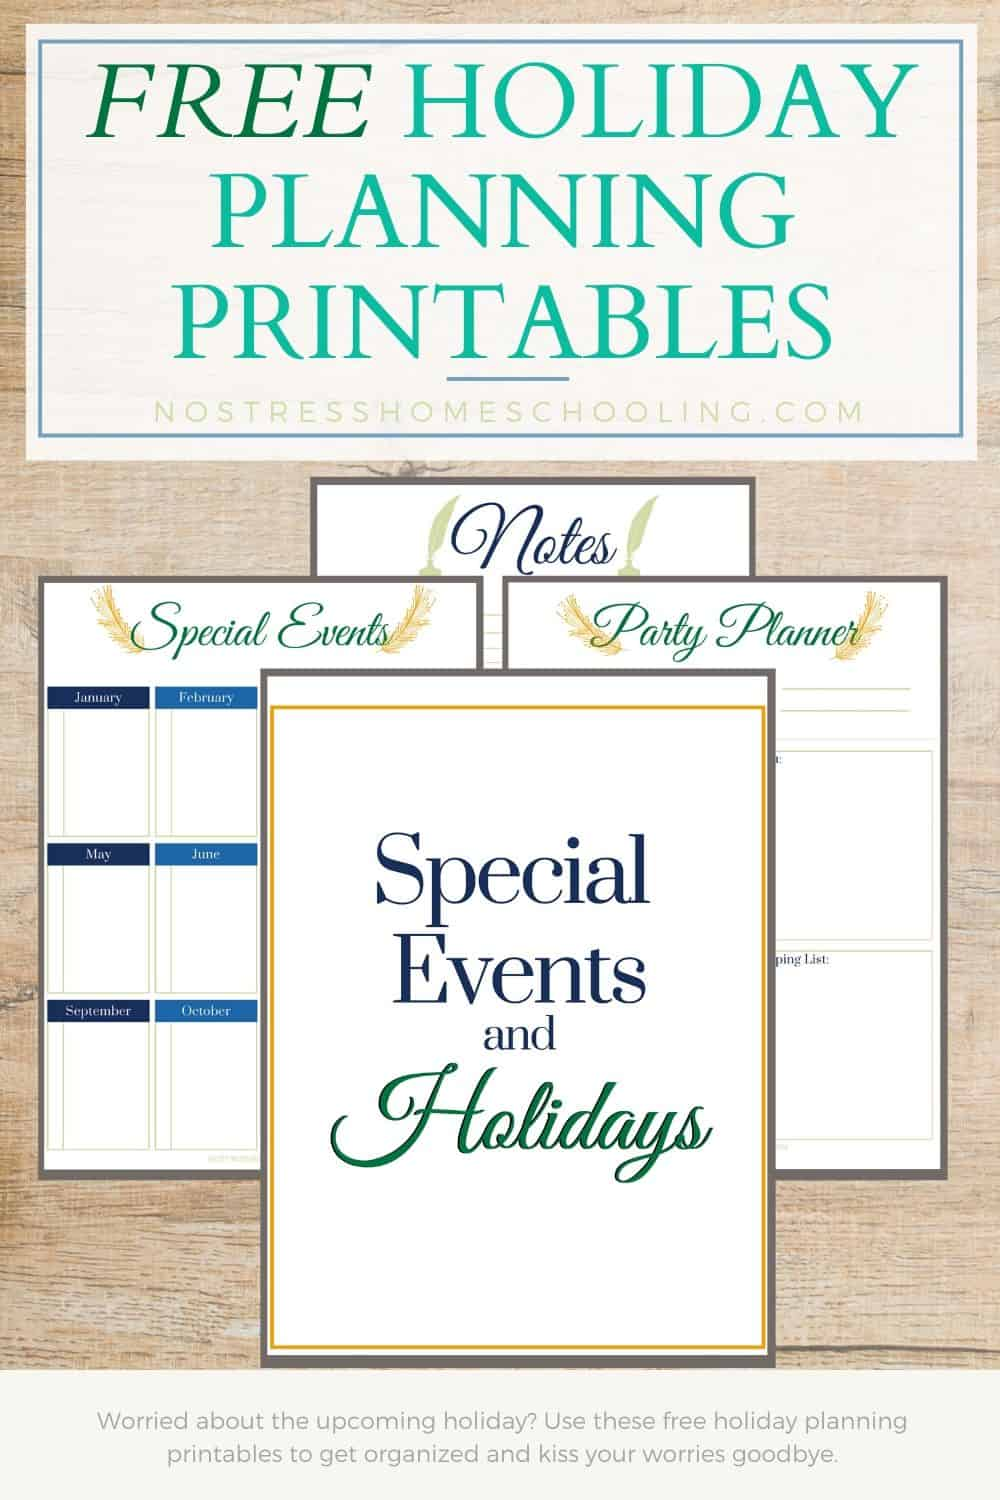 Worried about the upcoming holiday? Use these free holiday planning printables to get organized and kiss your worries goodbye.